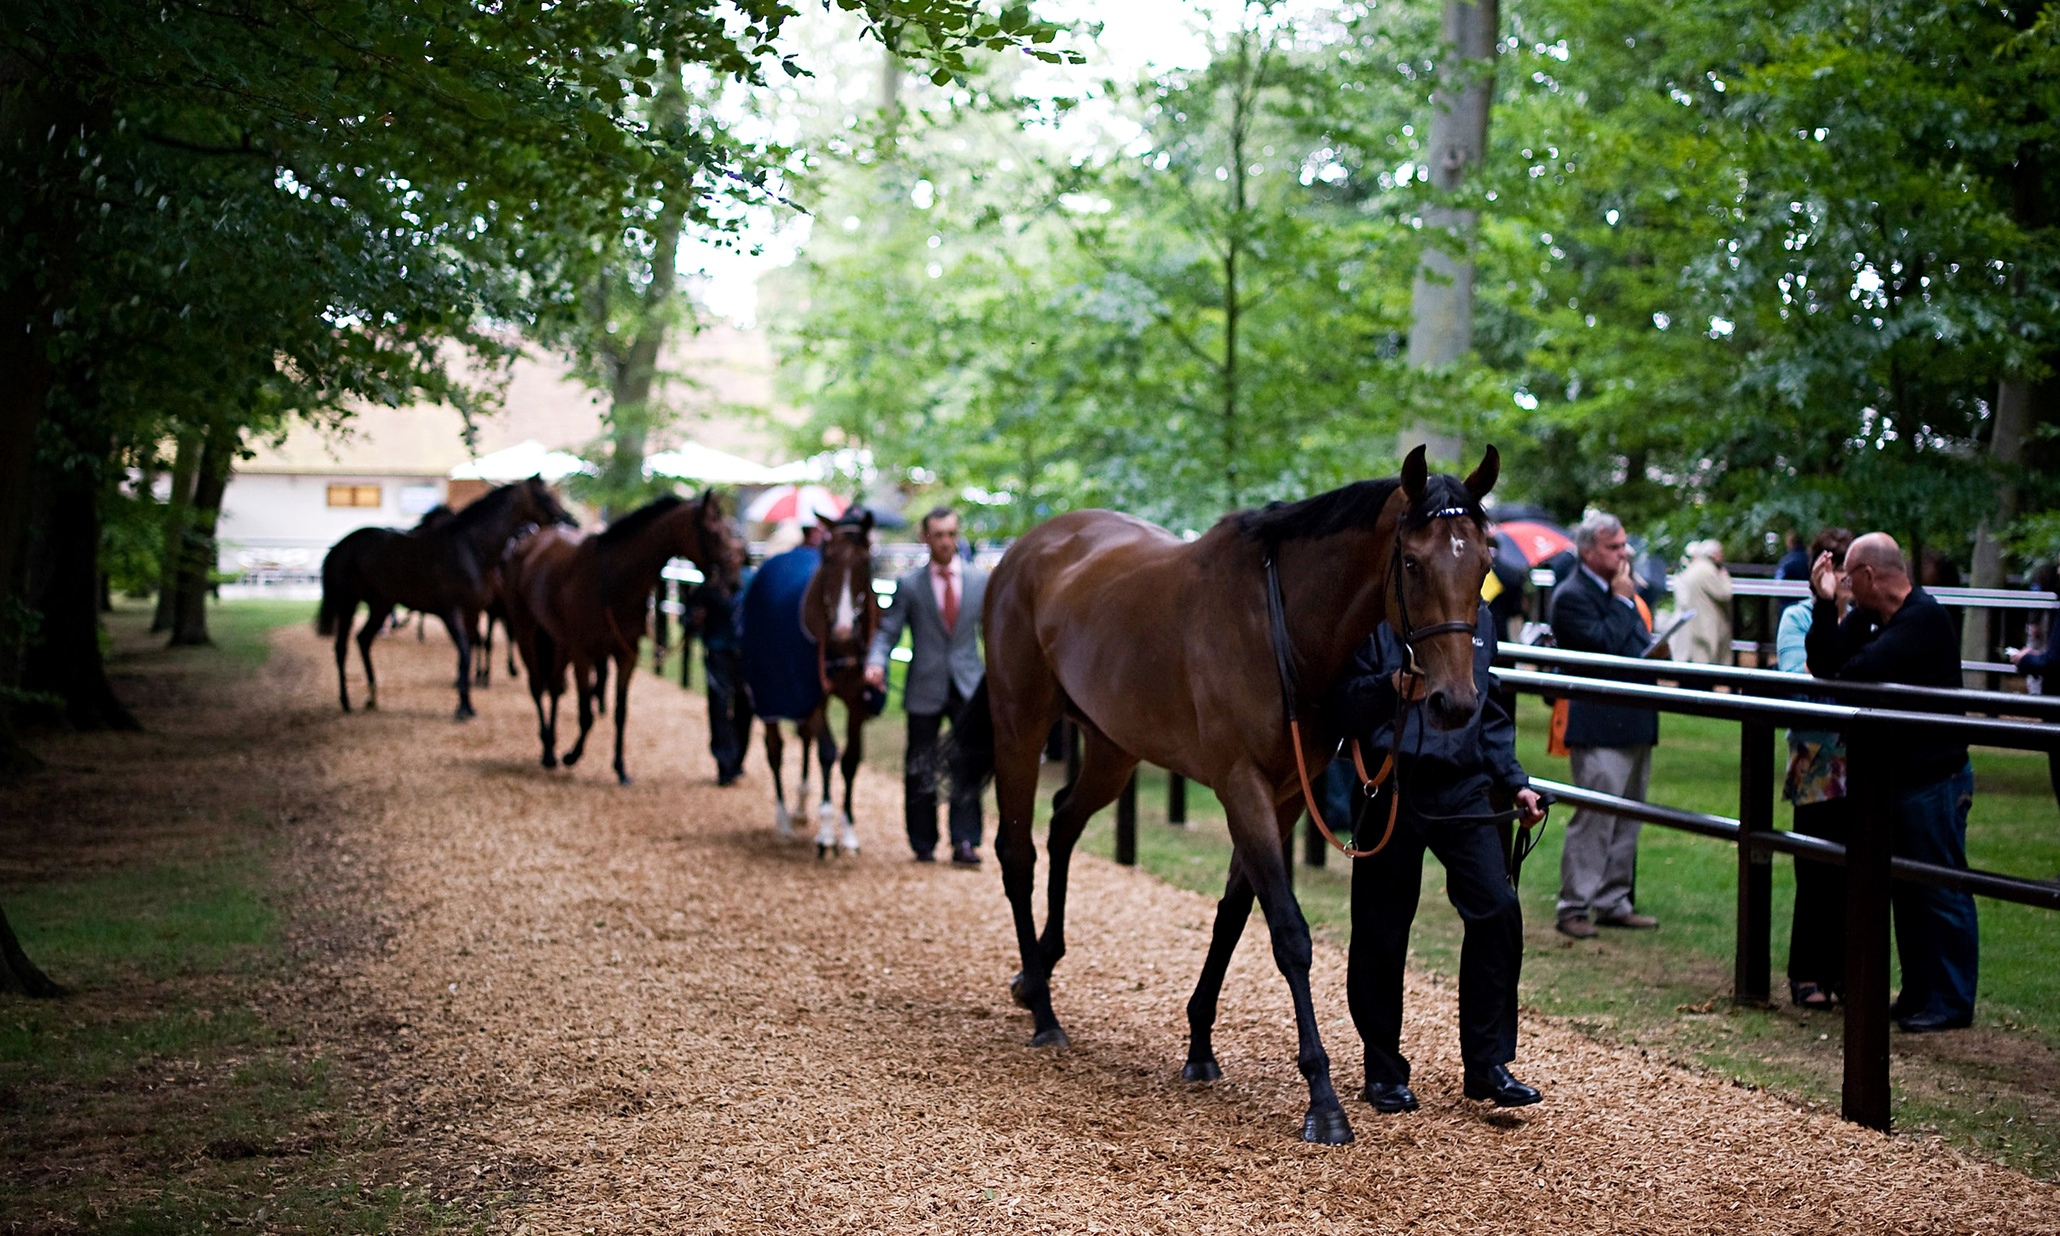 Horse racing tips: Thursday 9 July - Horse Racing news